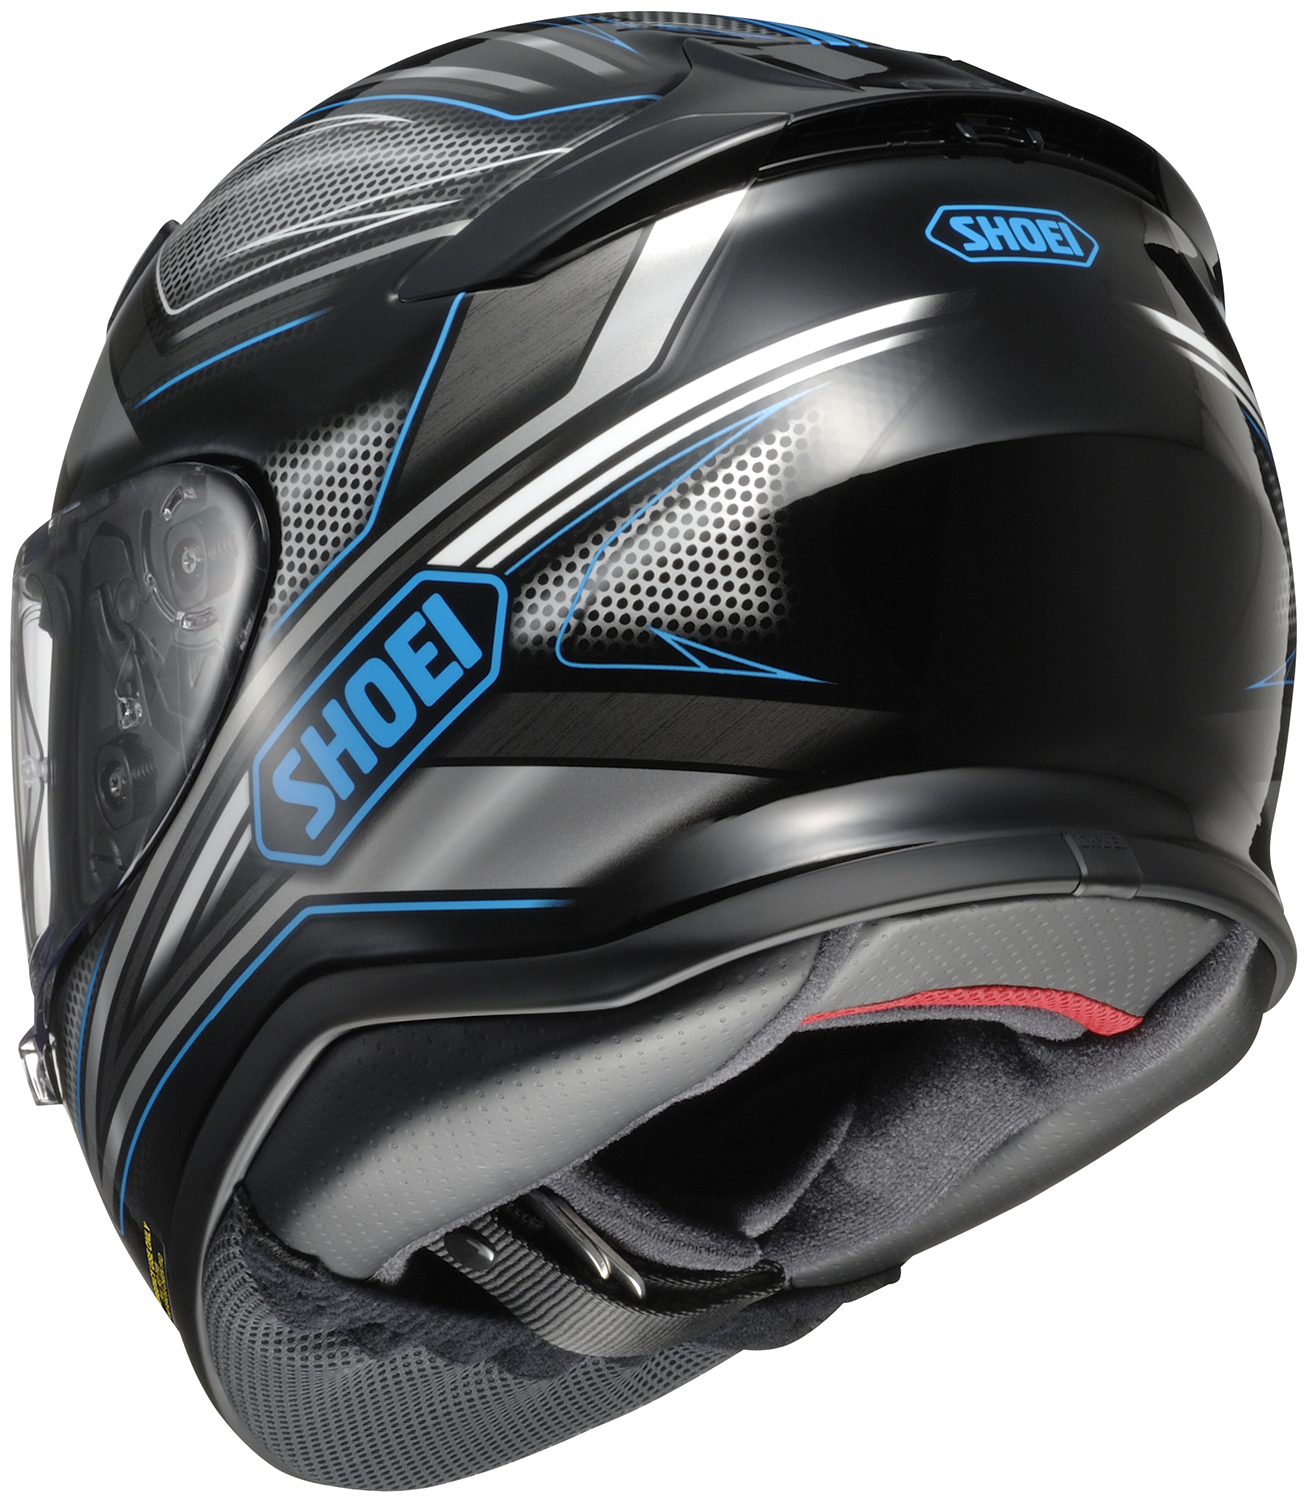 Shoei Rf 1200 Graphics